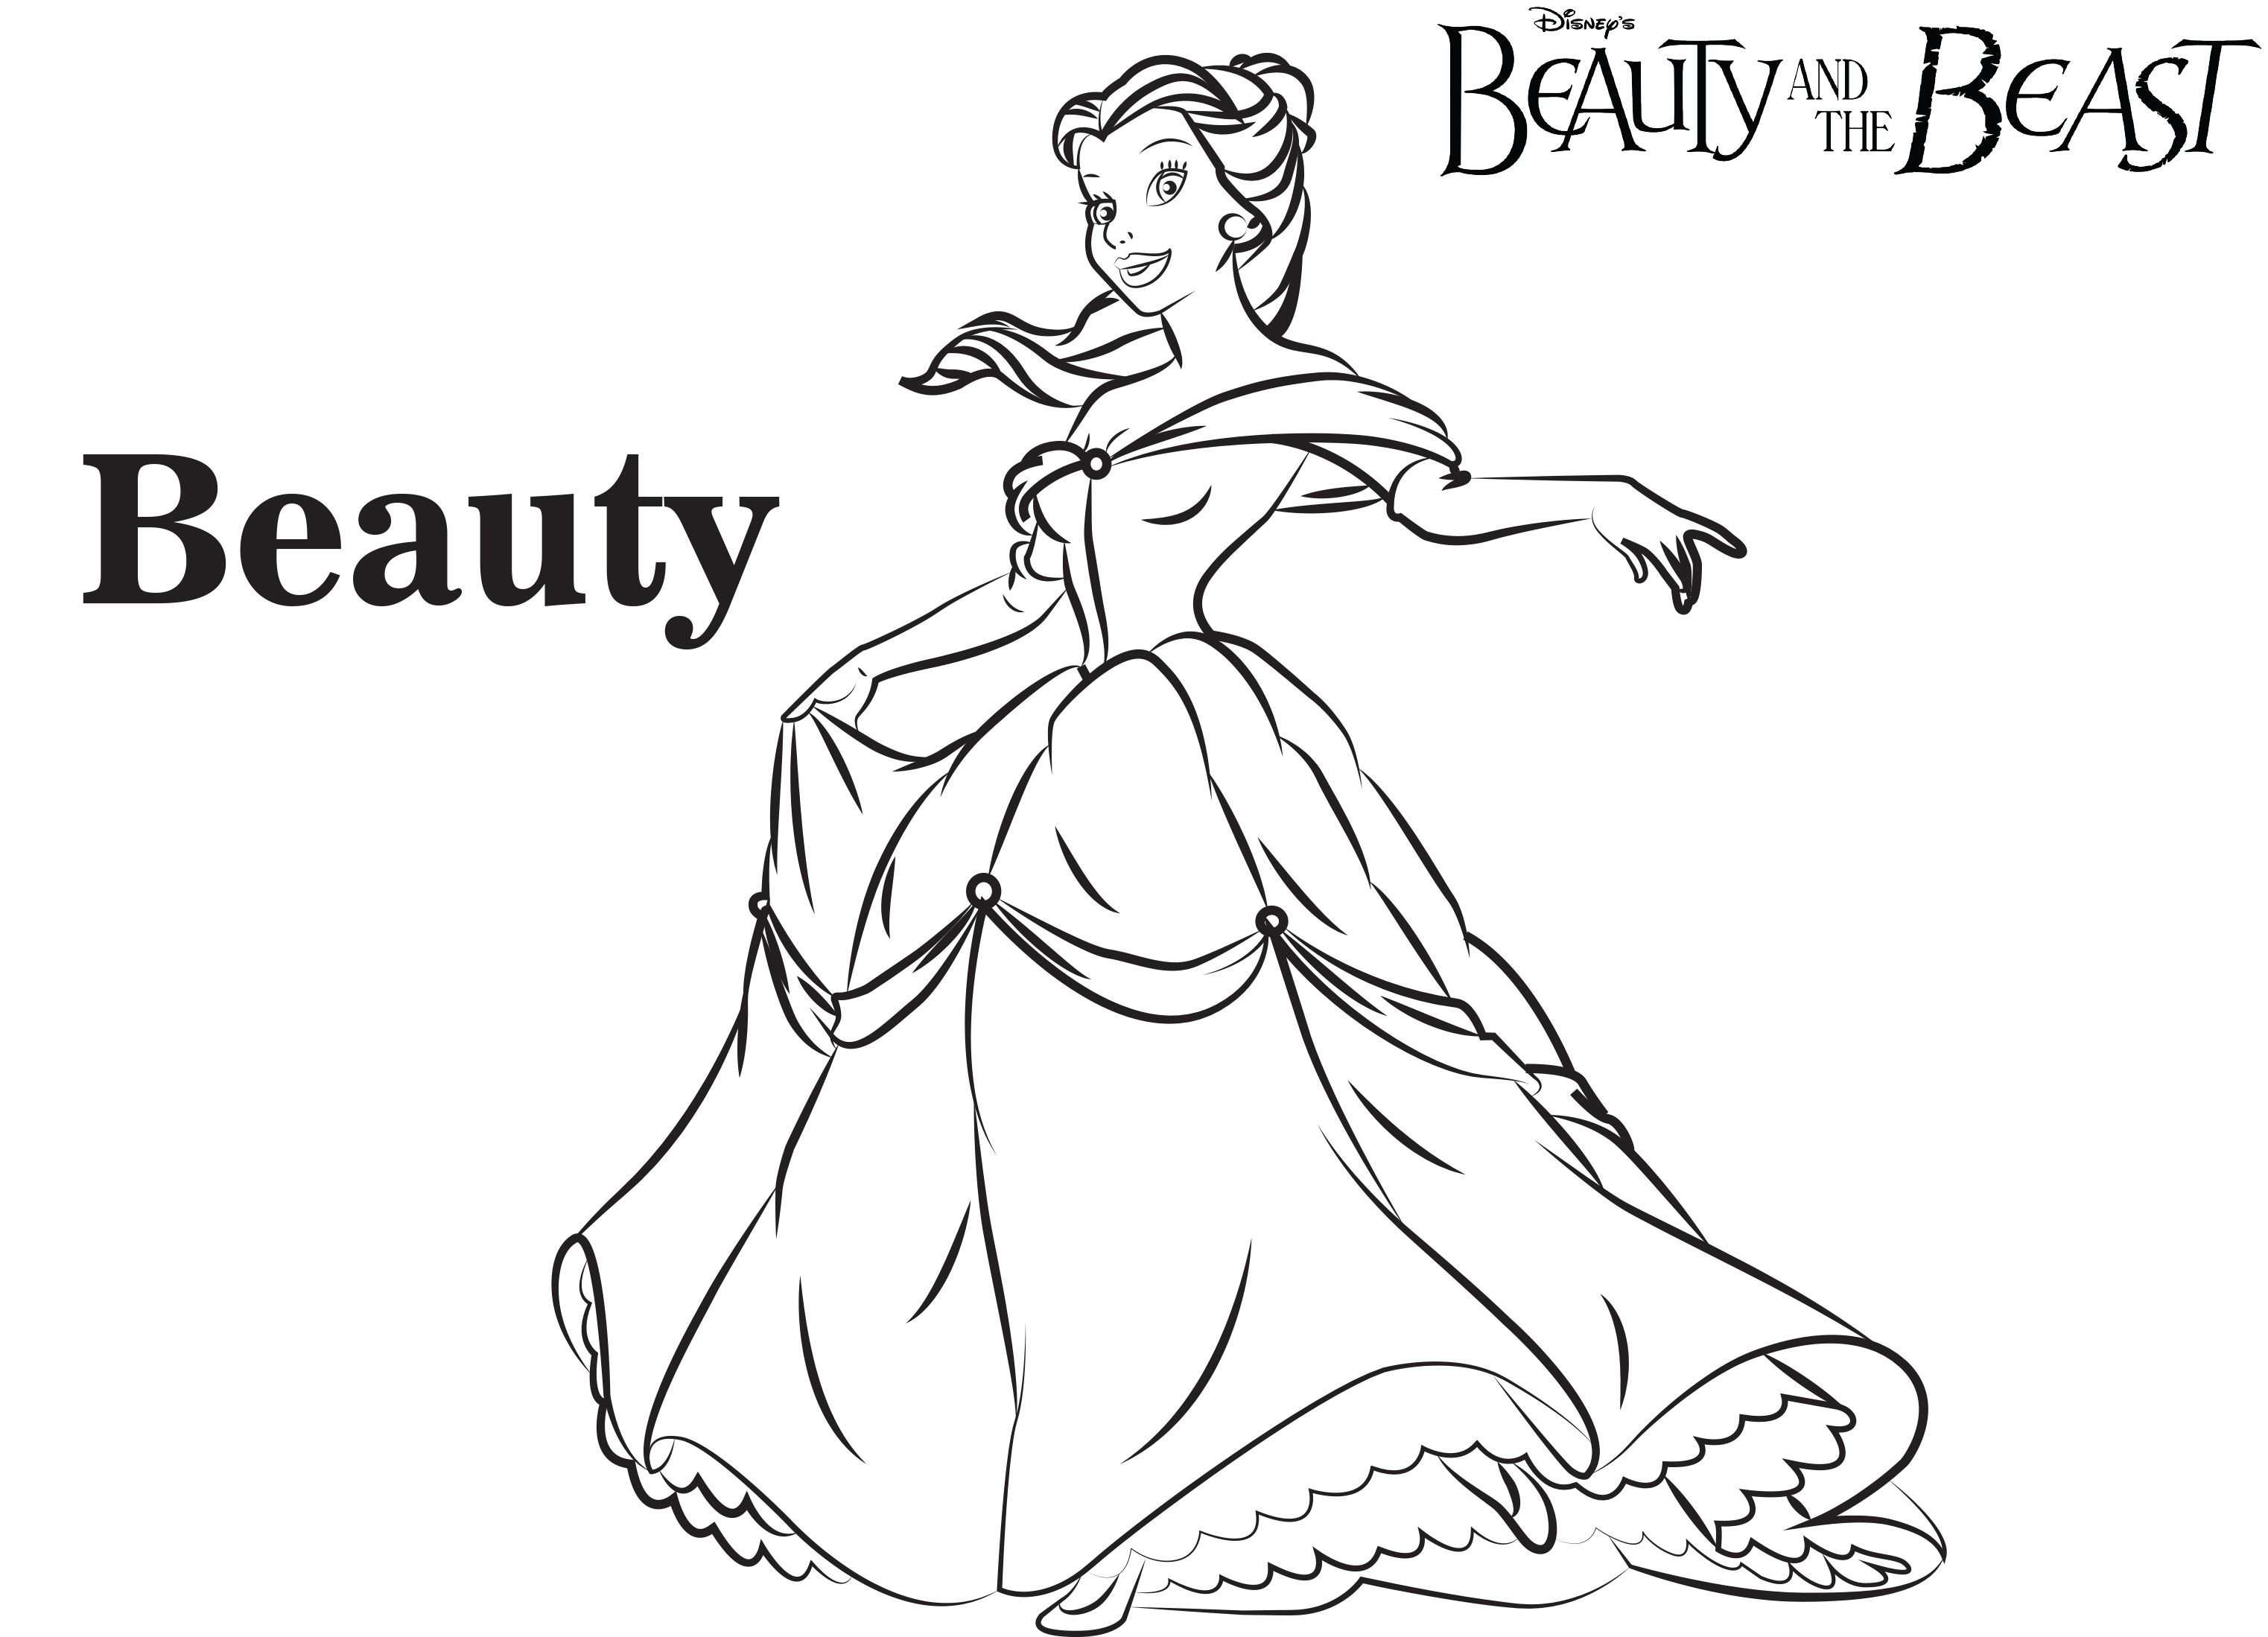 Disney's Beauty and the Beast Coloring Pages Sheet, Free